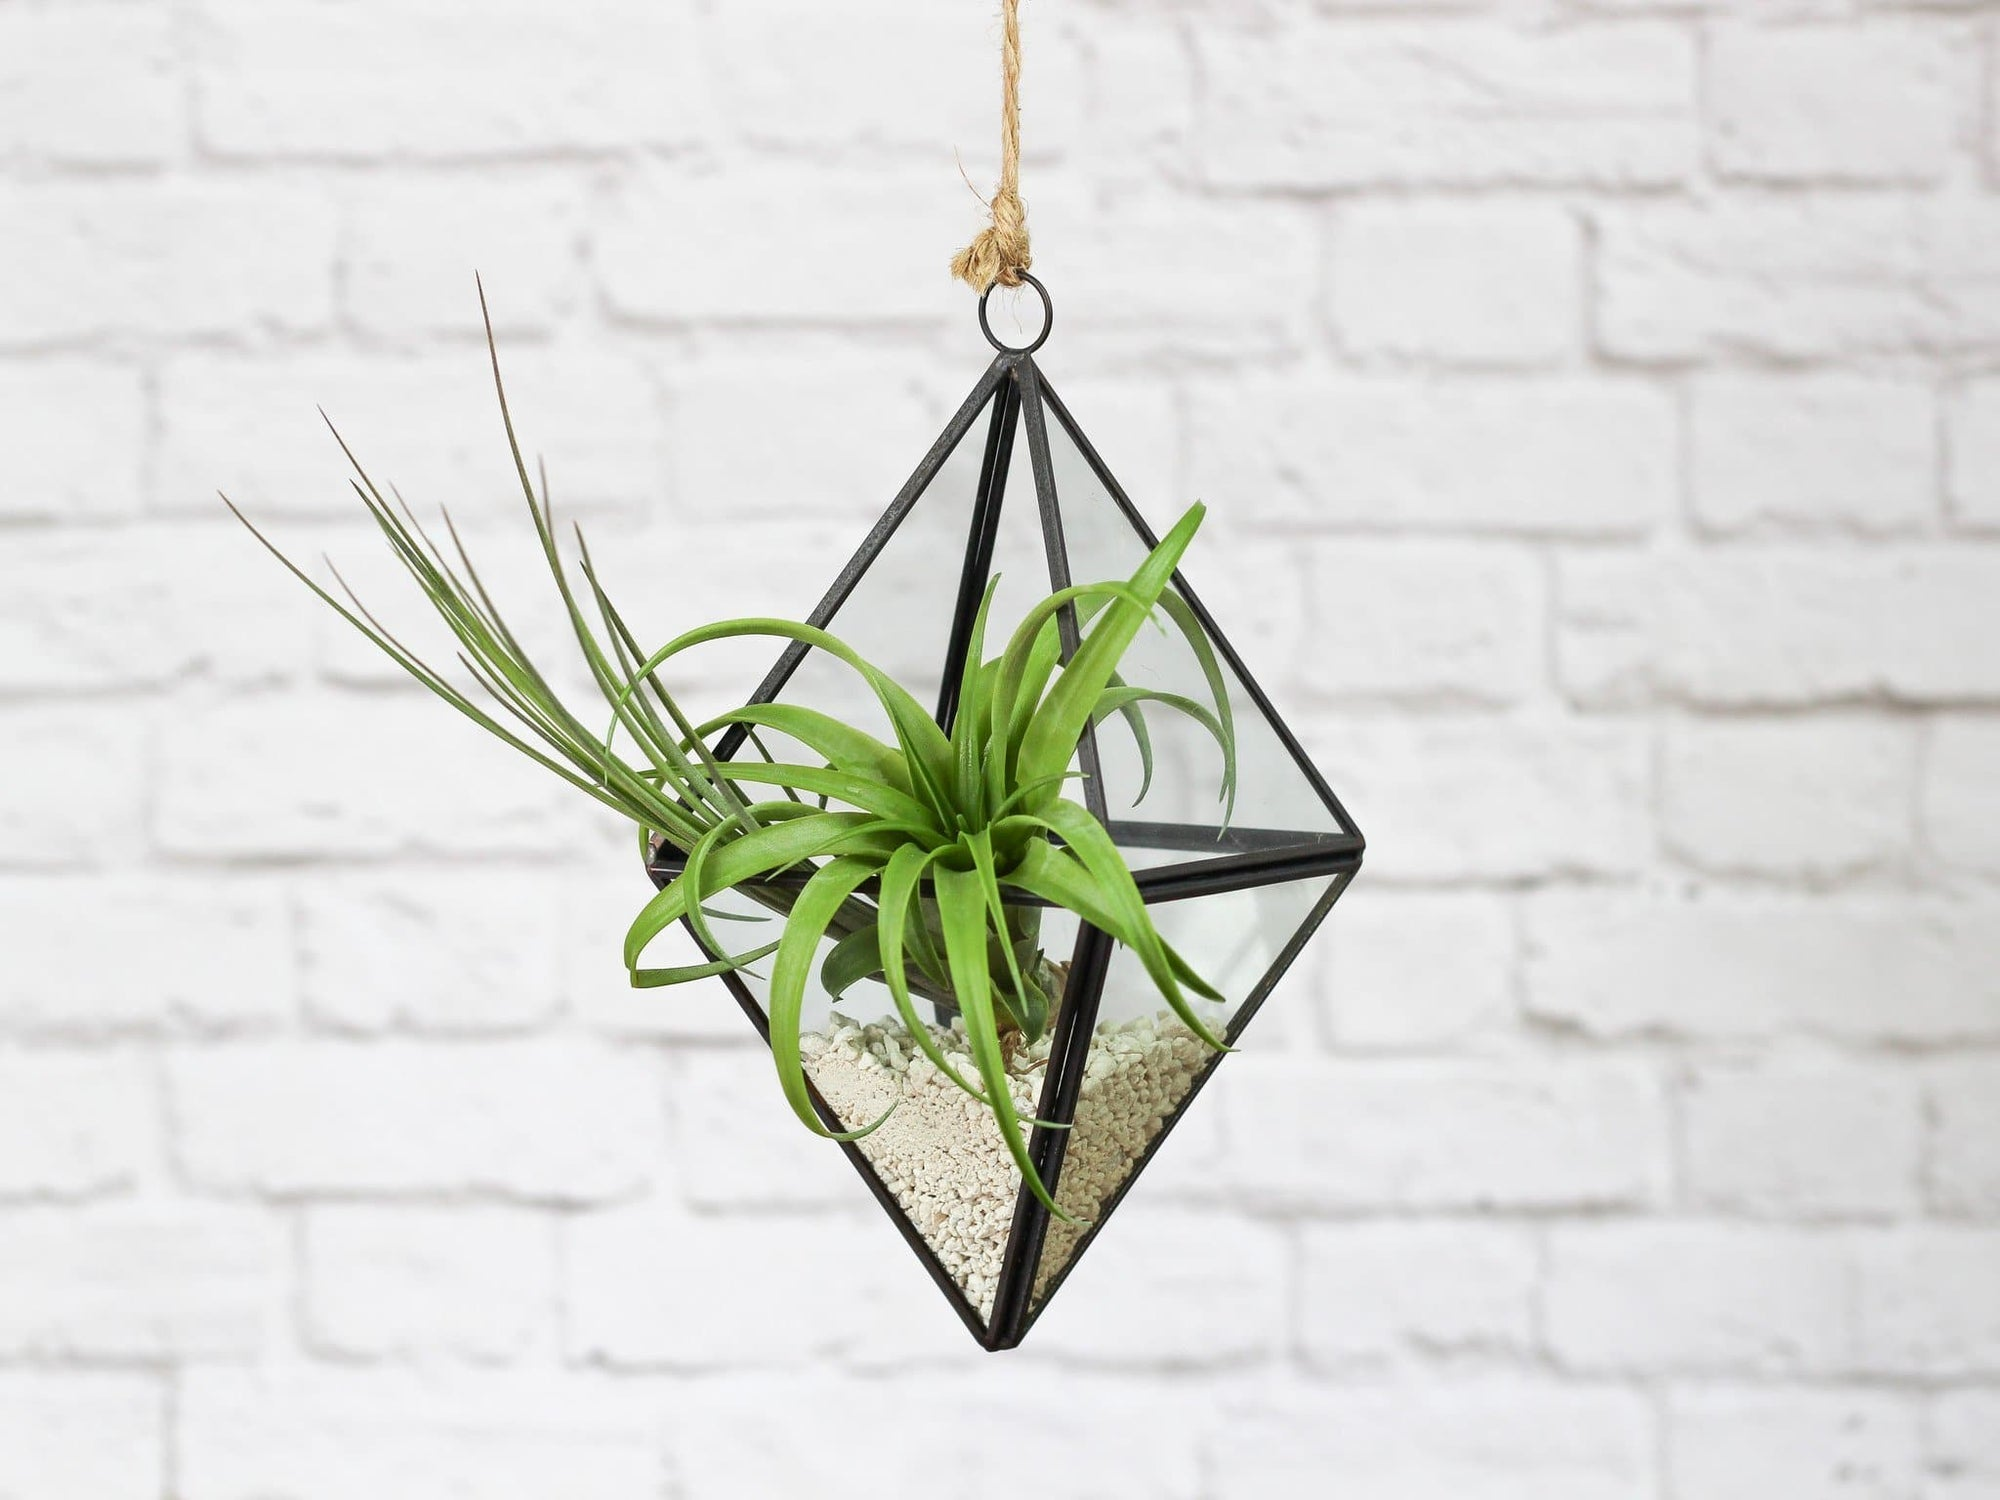 Hanging Geometric Air Plant Terrarium